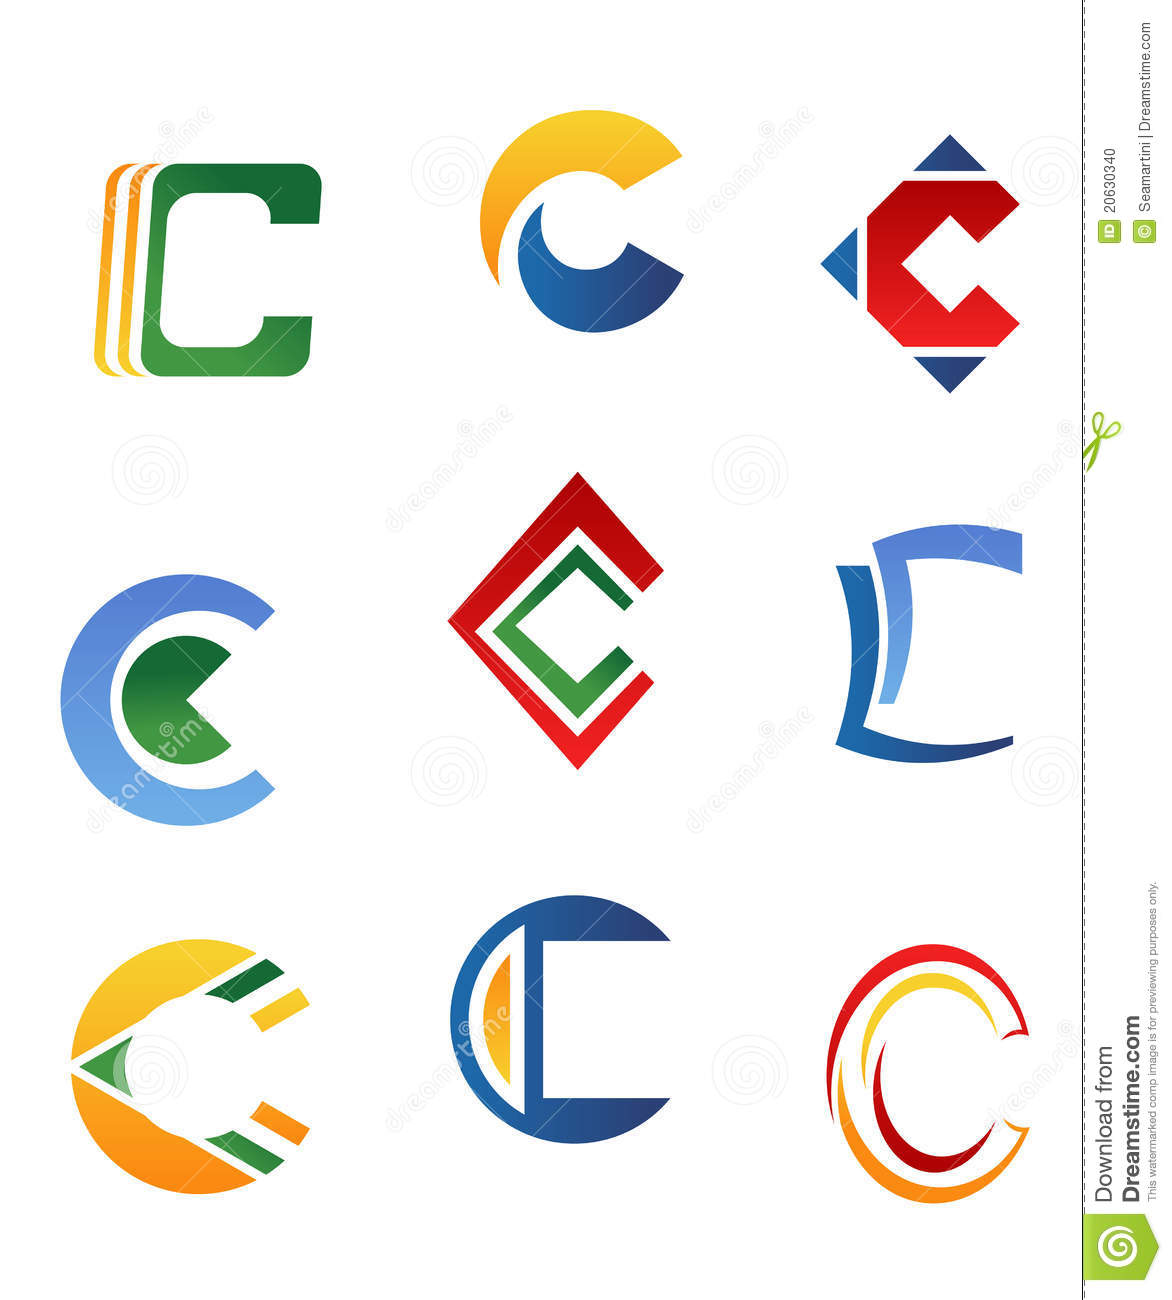 letter c symbols stock vector  illustration of decoration